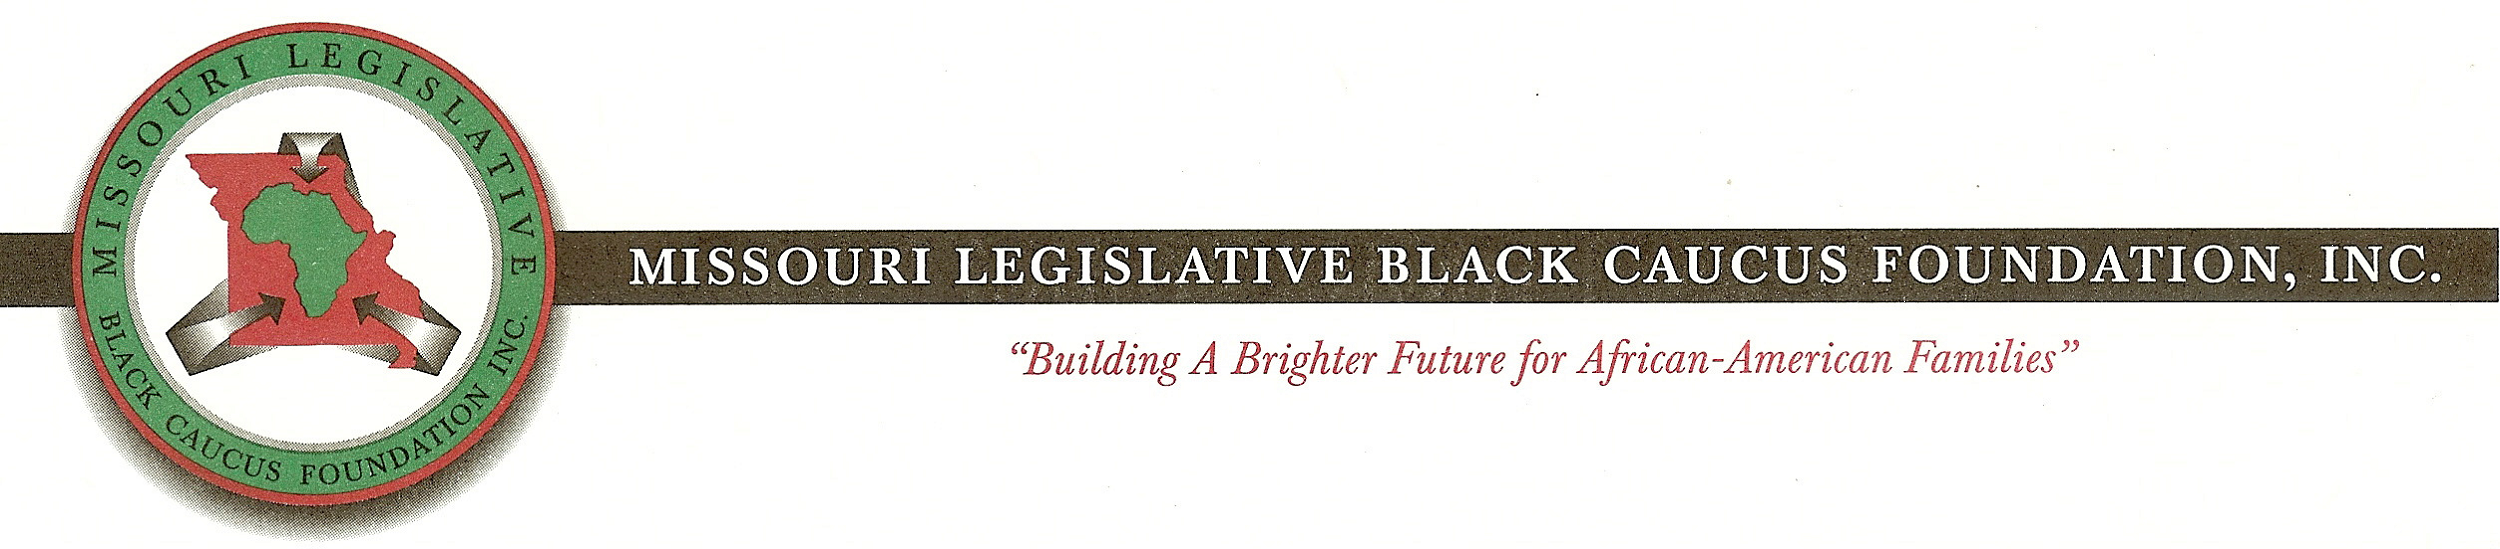 Missouri Legislative Black Caucus